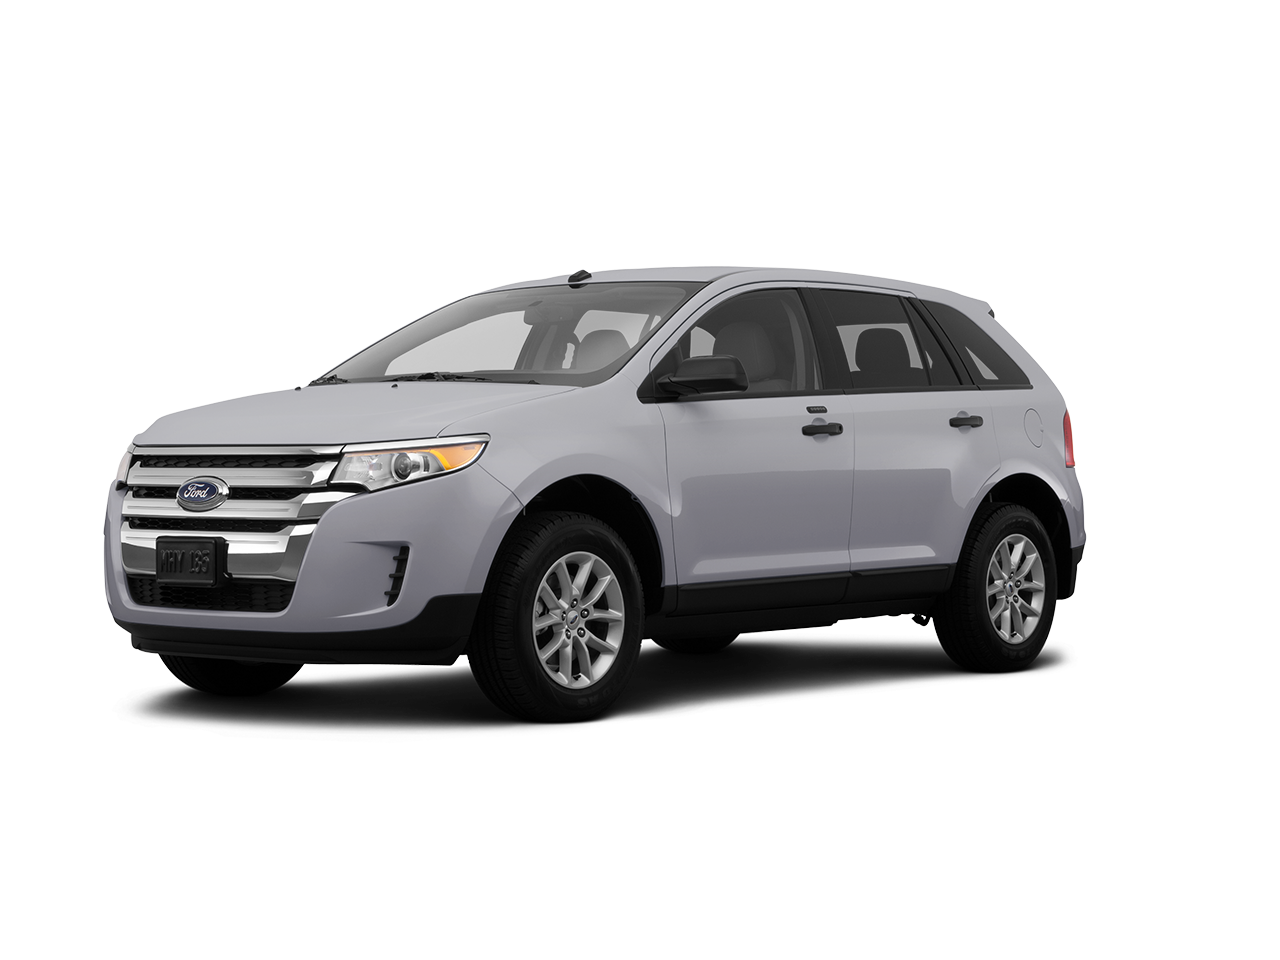 Test Drive A 2015 Ford Edge at Doenges Ford in Tulsa